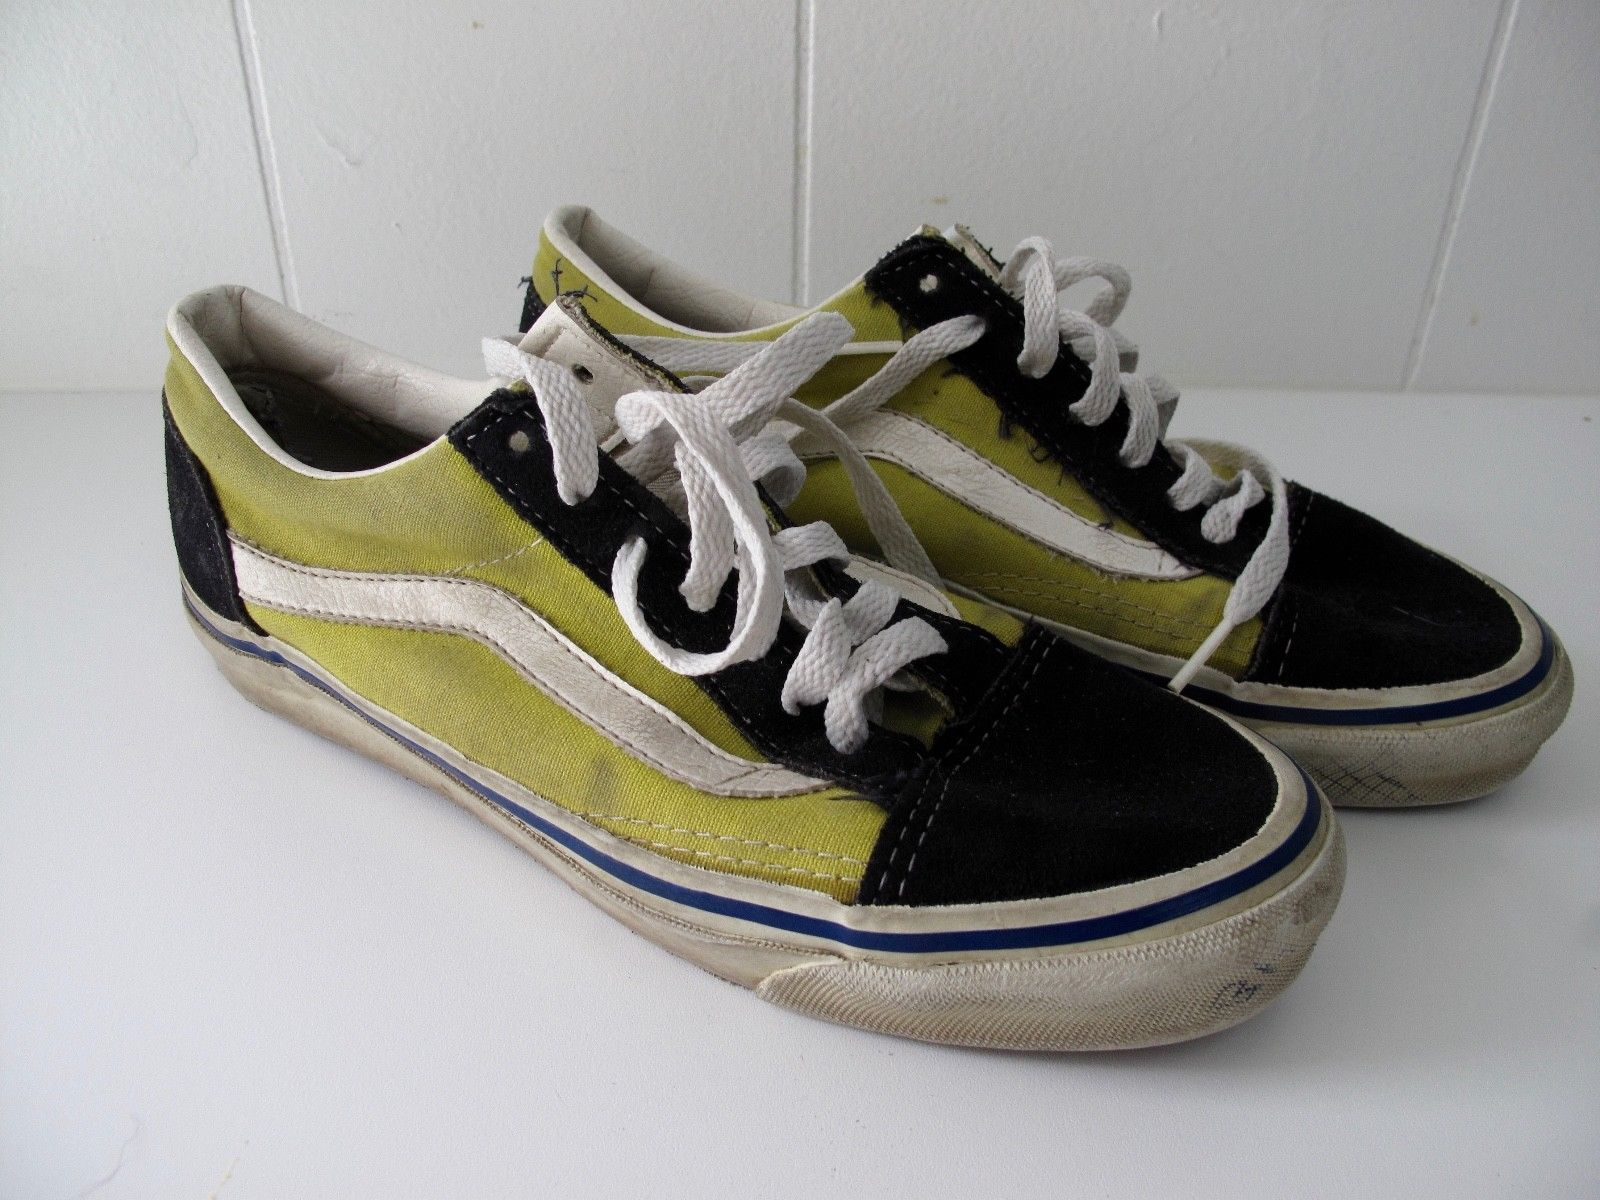 e6b3d83680b Vintage Vans Old Skool Made in USA Size 8-8.5 Yellow Black White ...